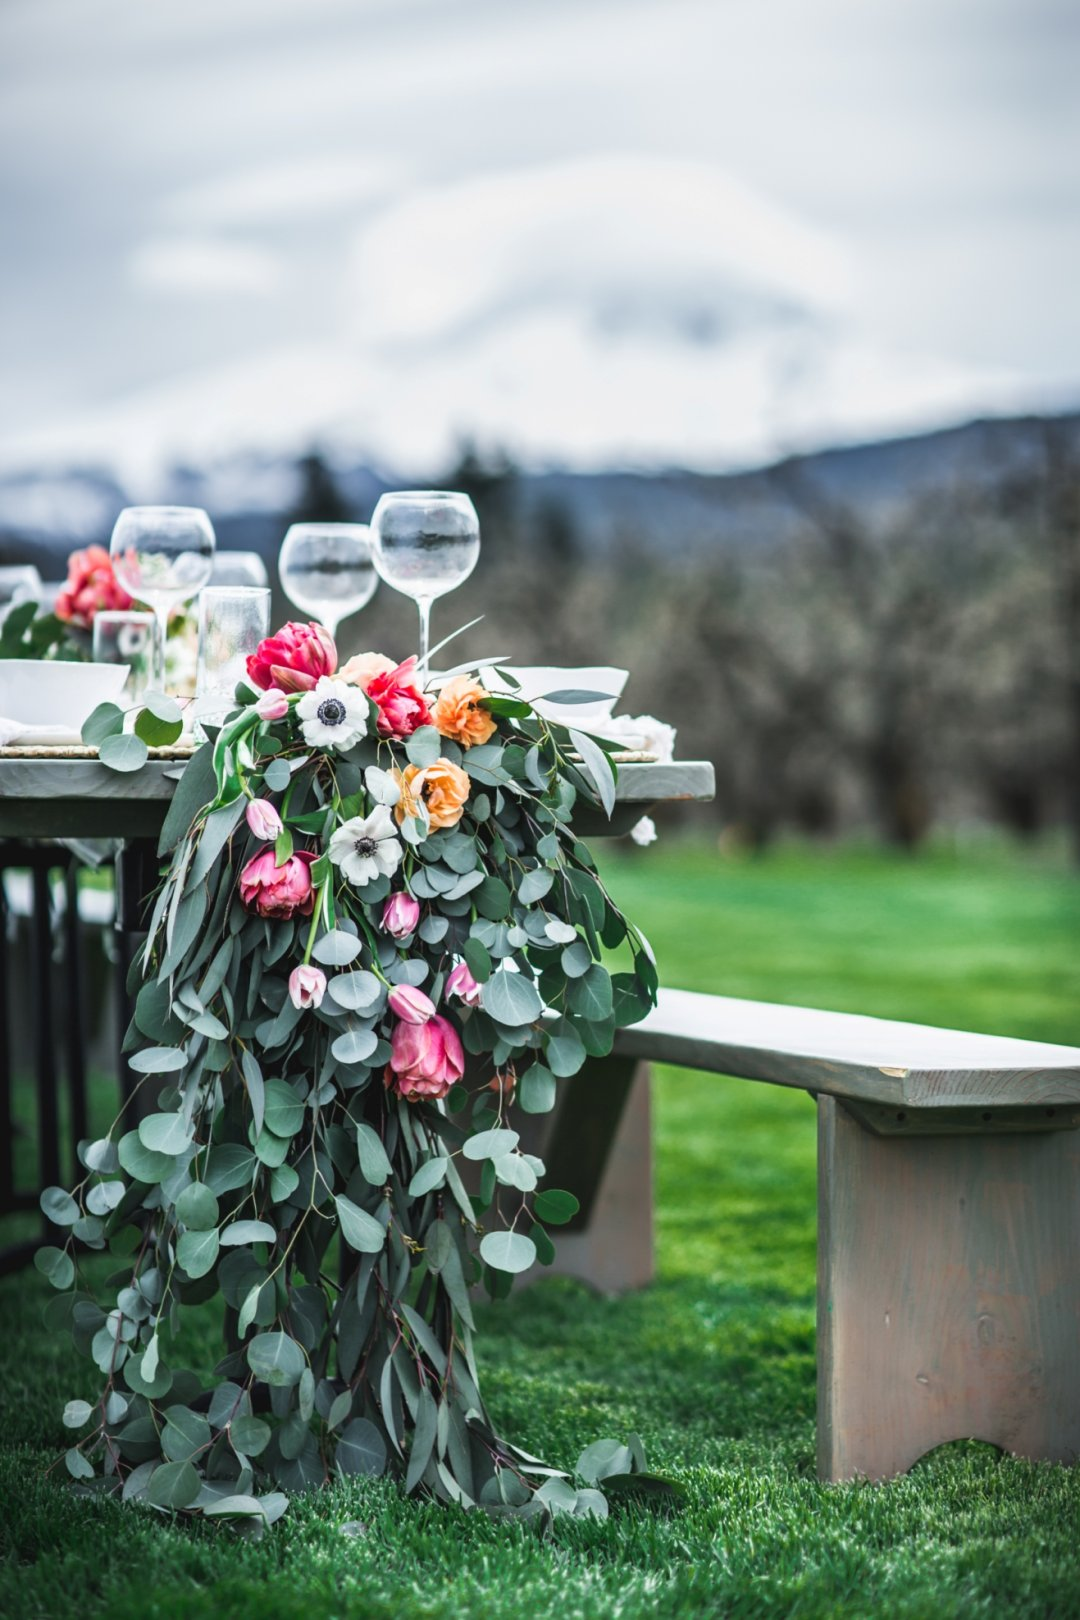 Side view of table with wreath of flowers flowing down and mountains in background